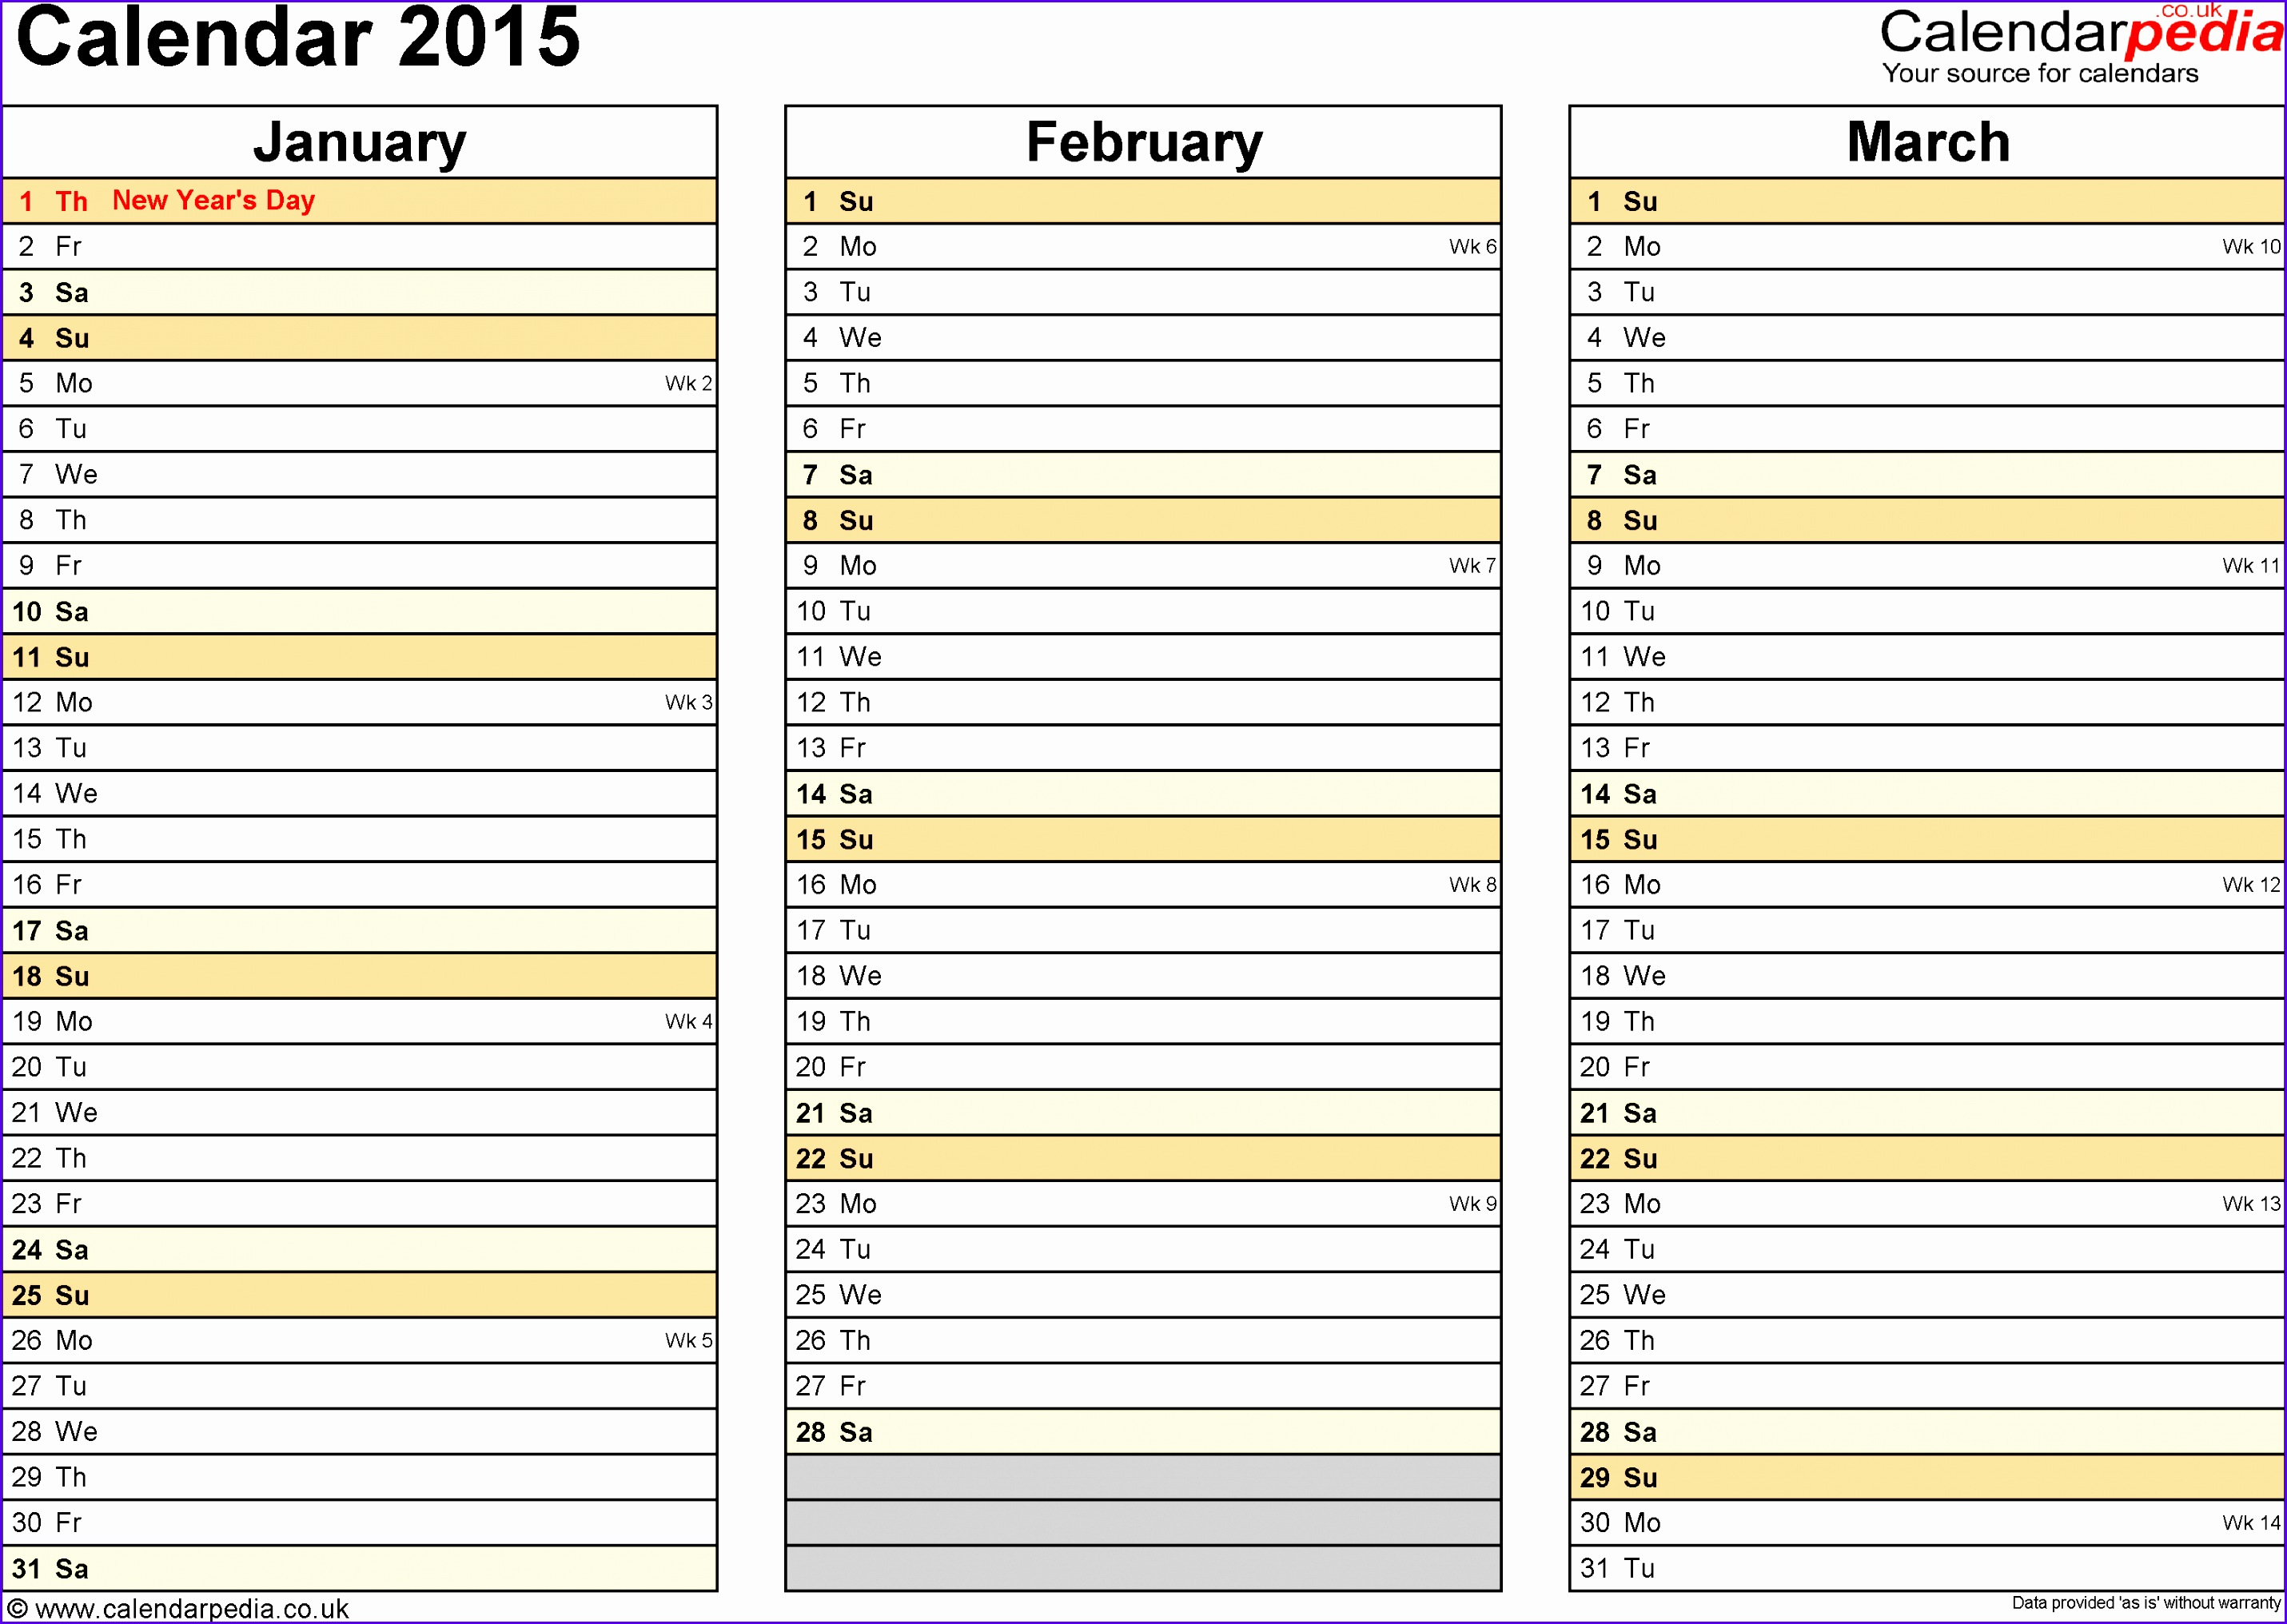 Template 5 Yearly calendar 2015 as Excel template landscape orientation 4 pages 28612032